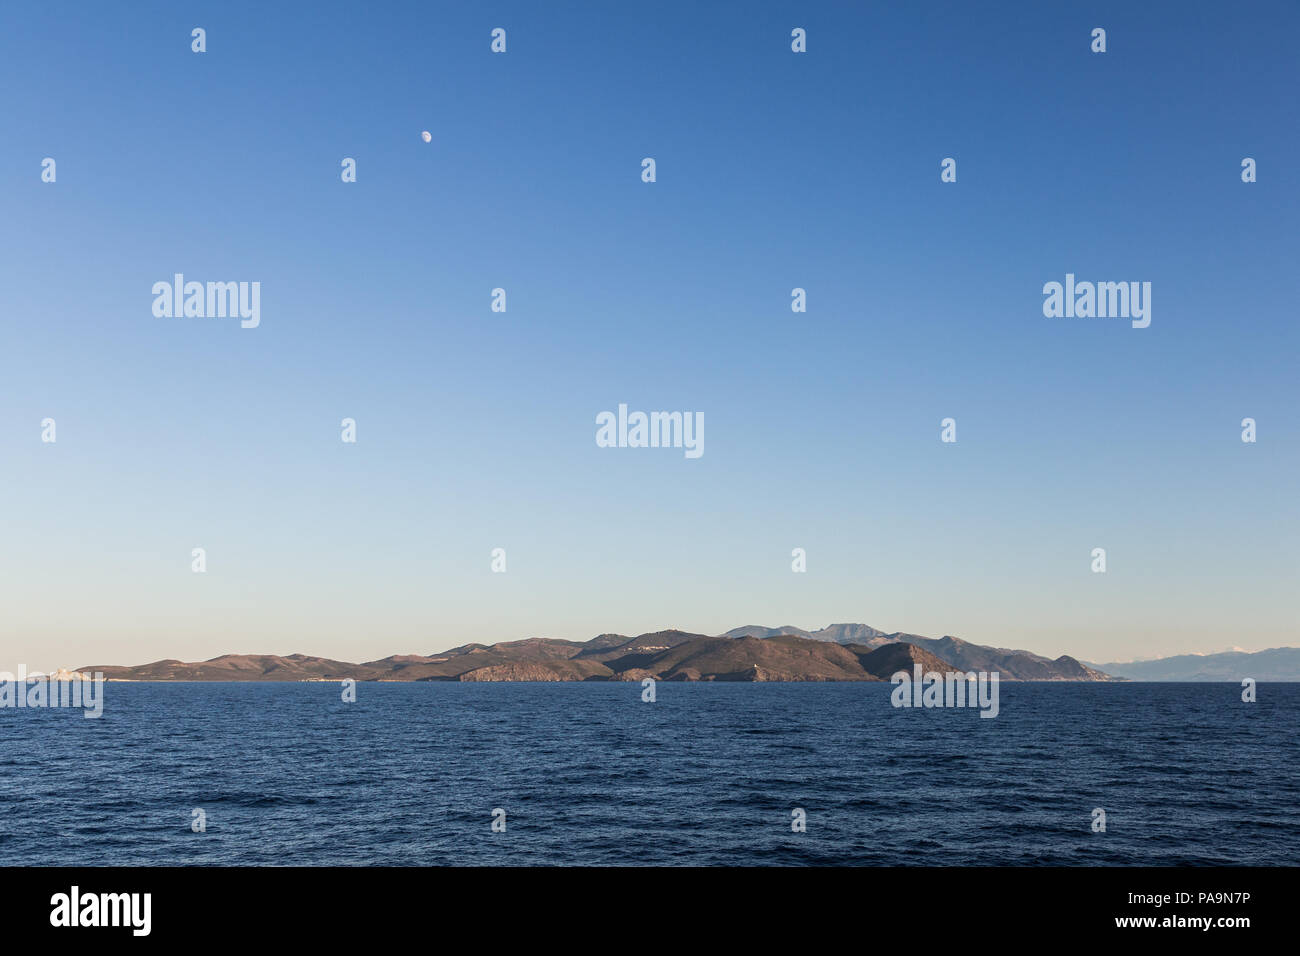 A view from the sea of the island of Corsica in the mediterranean sea in France - Stock Image